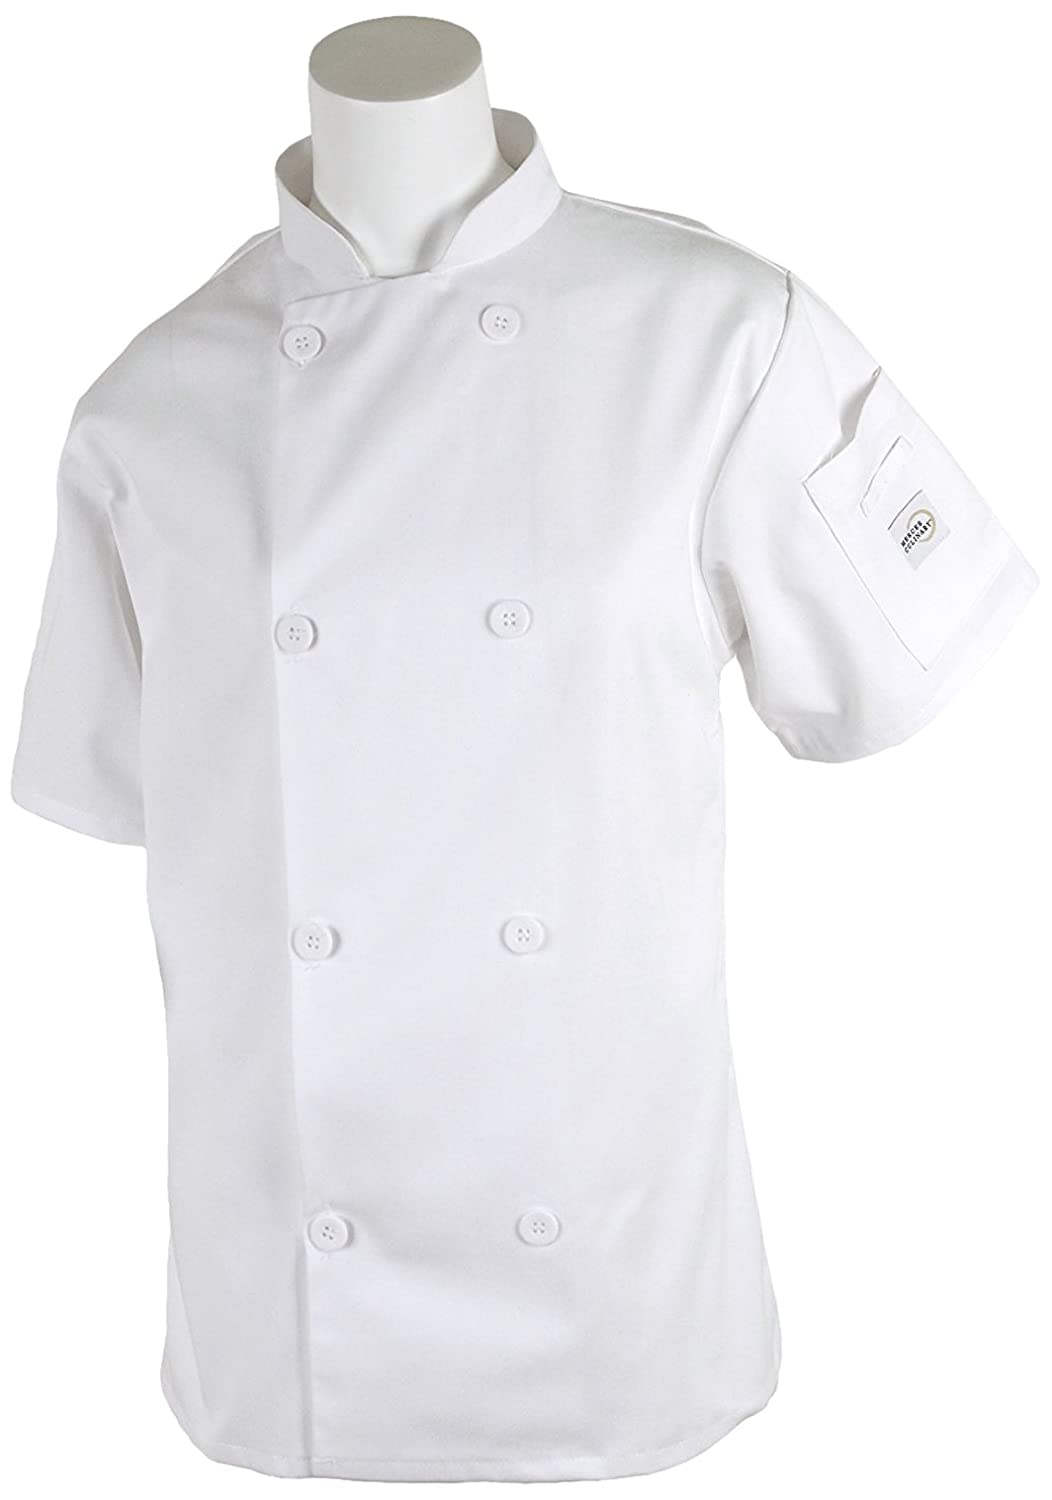 Mercer Culinary M60023WHXXS Millennia Women's Short Sleeve Cook Jacket with Traditional Buttons, XX-Small, White